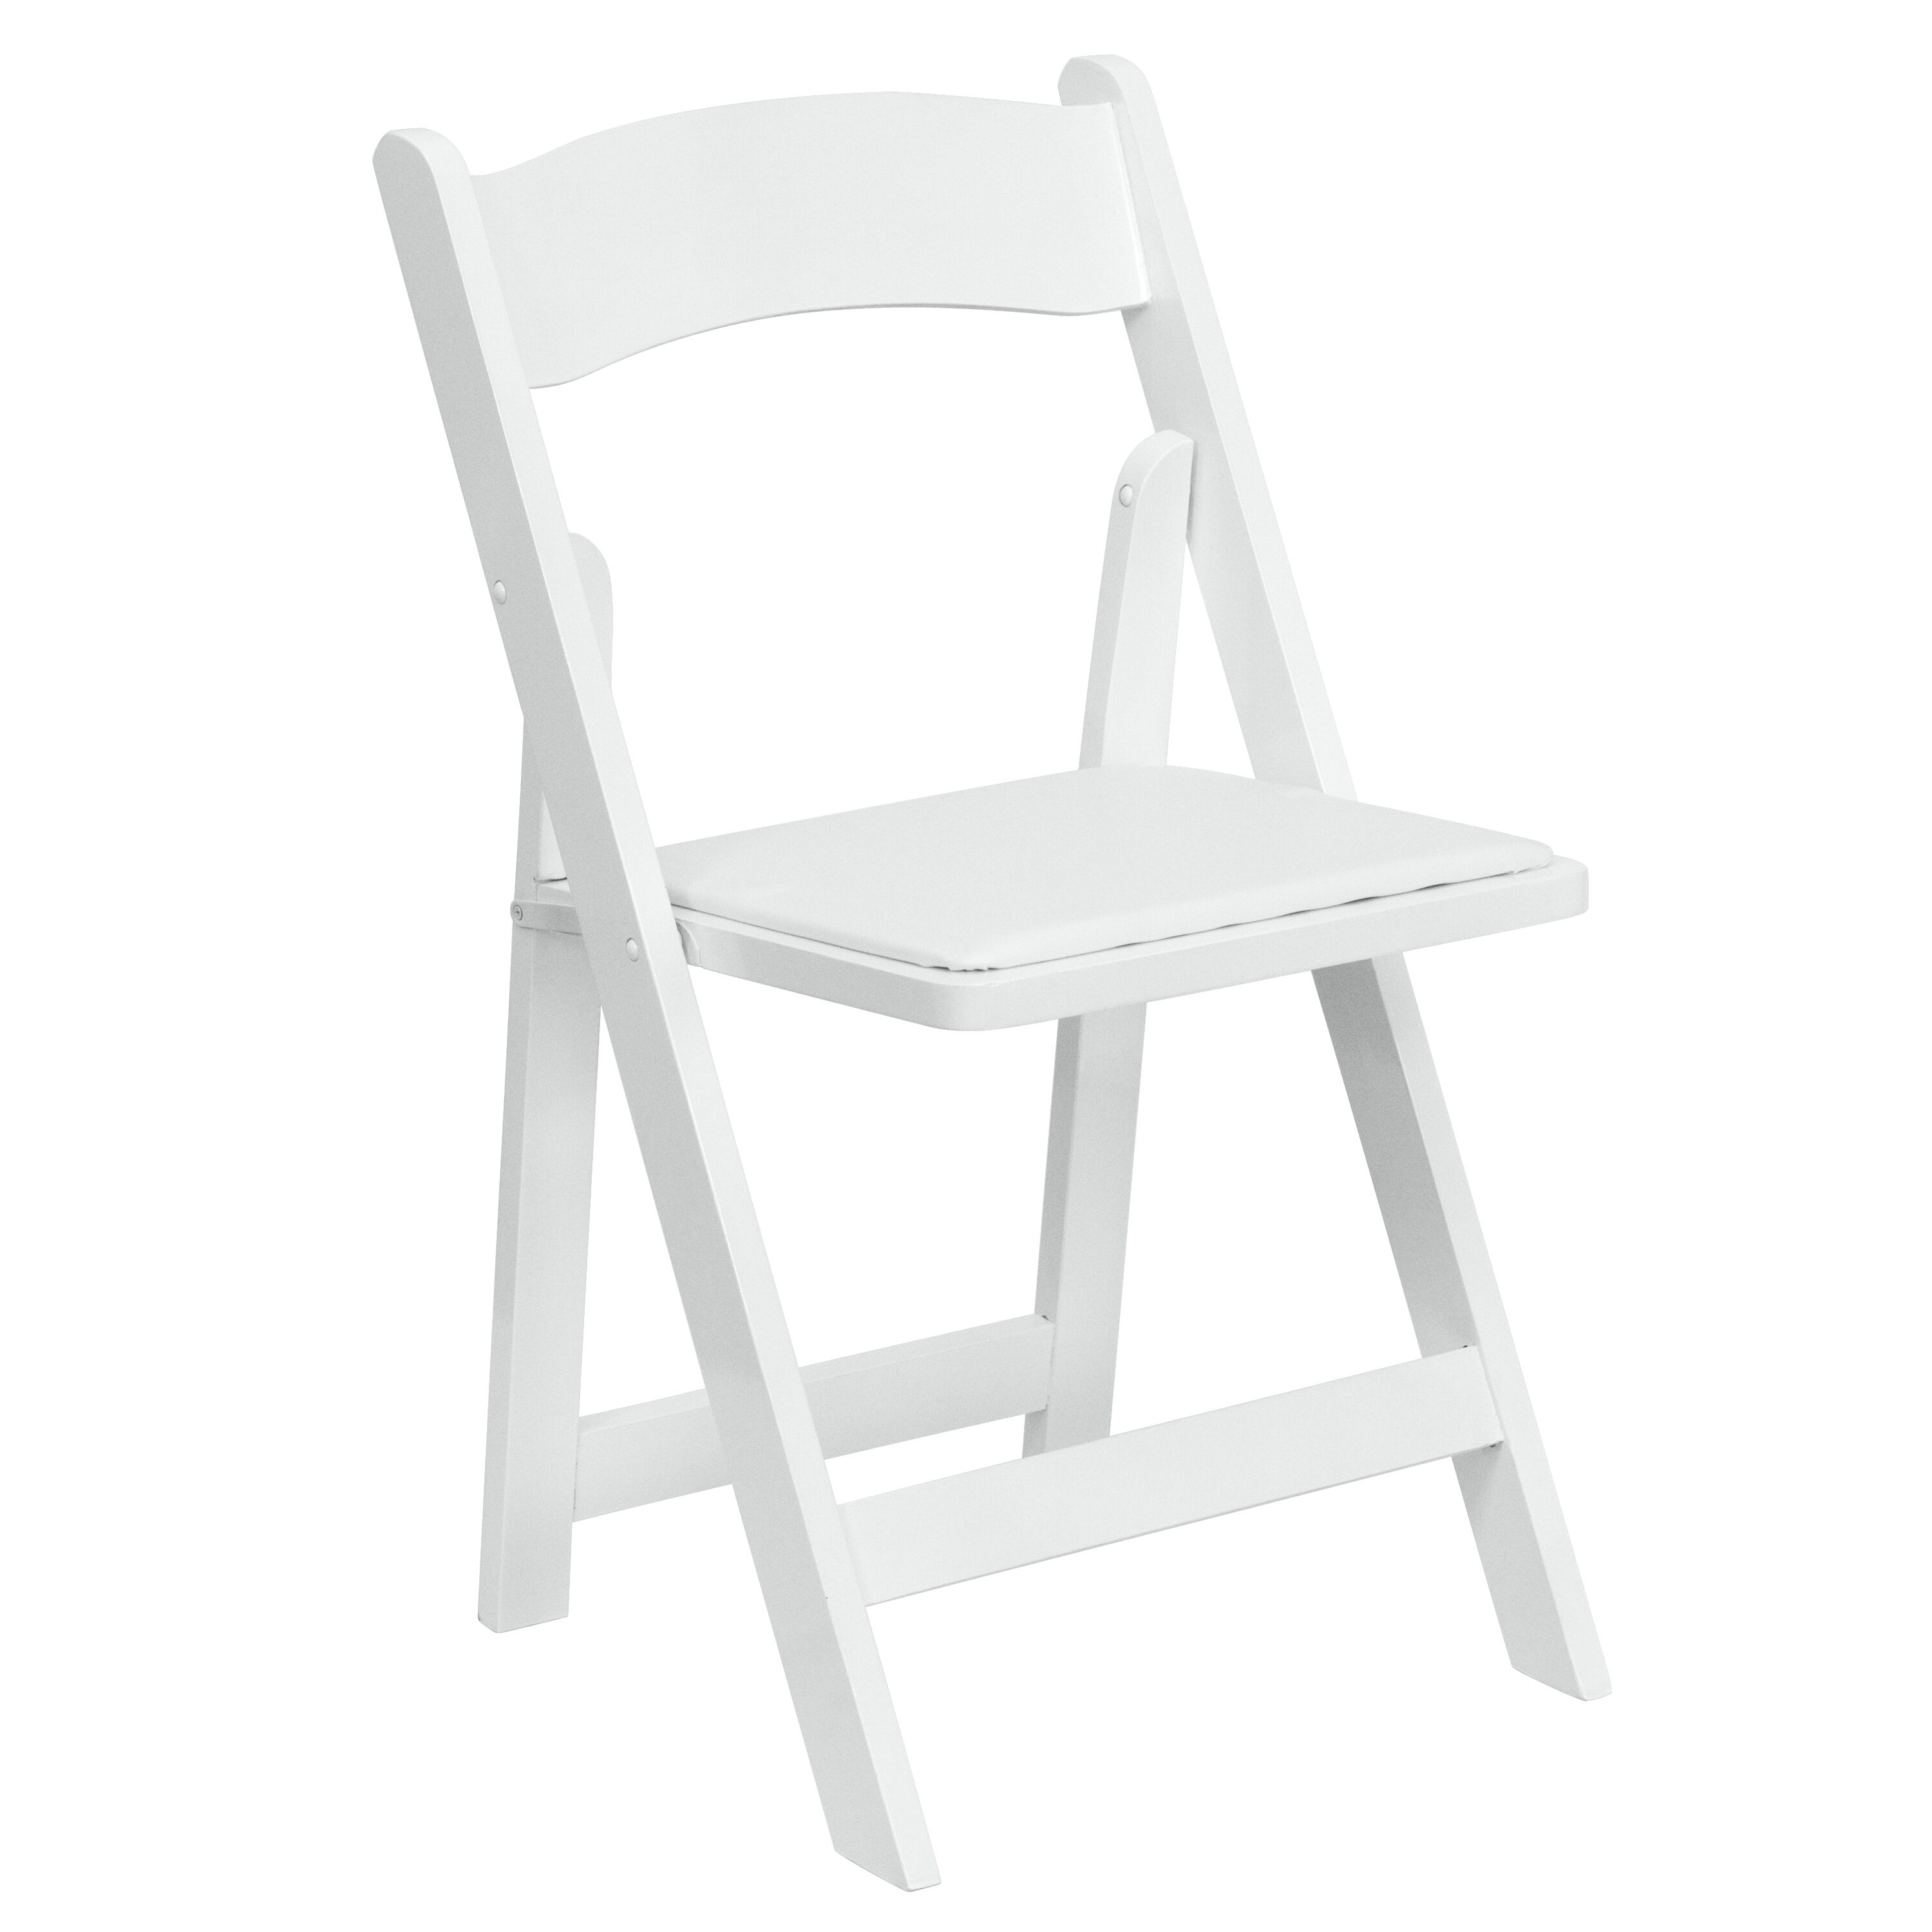 Chairs Folding Hercules Series White Wood Folding Chair With Vinyl Padded Seat